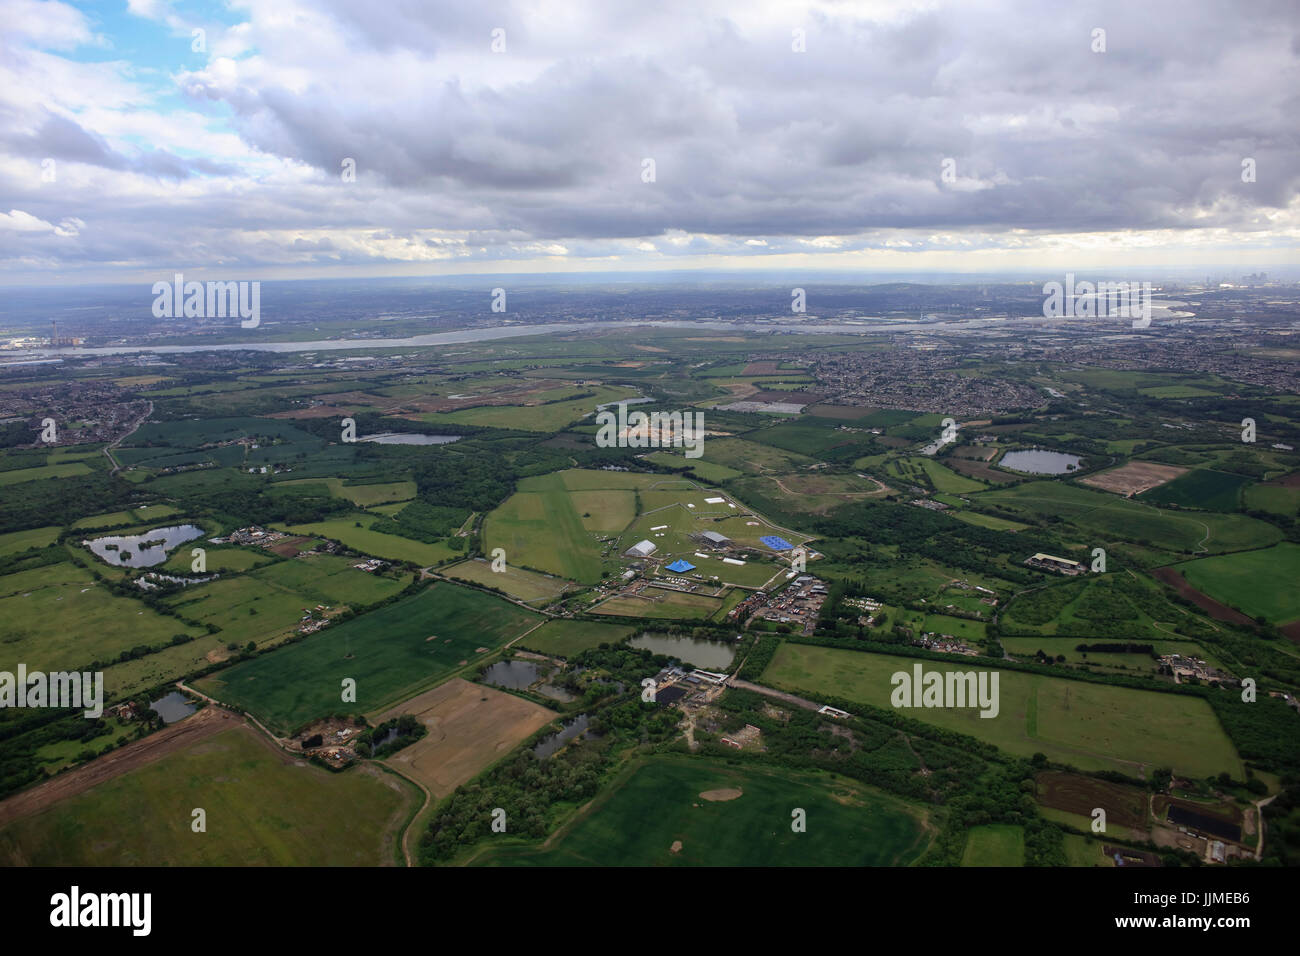 An aerial view of the Essex countryside south of Hornchurch - Stock Image